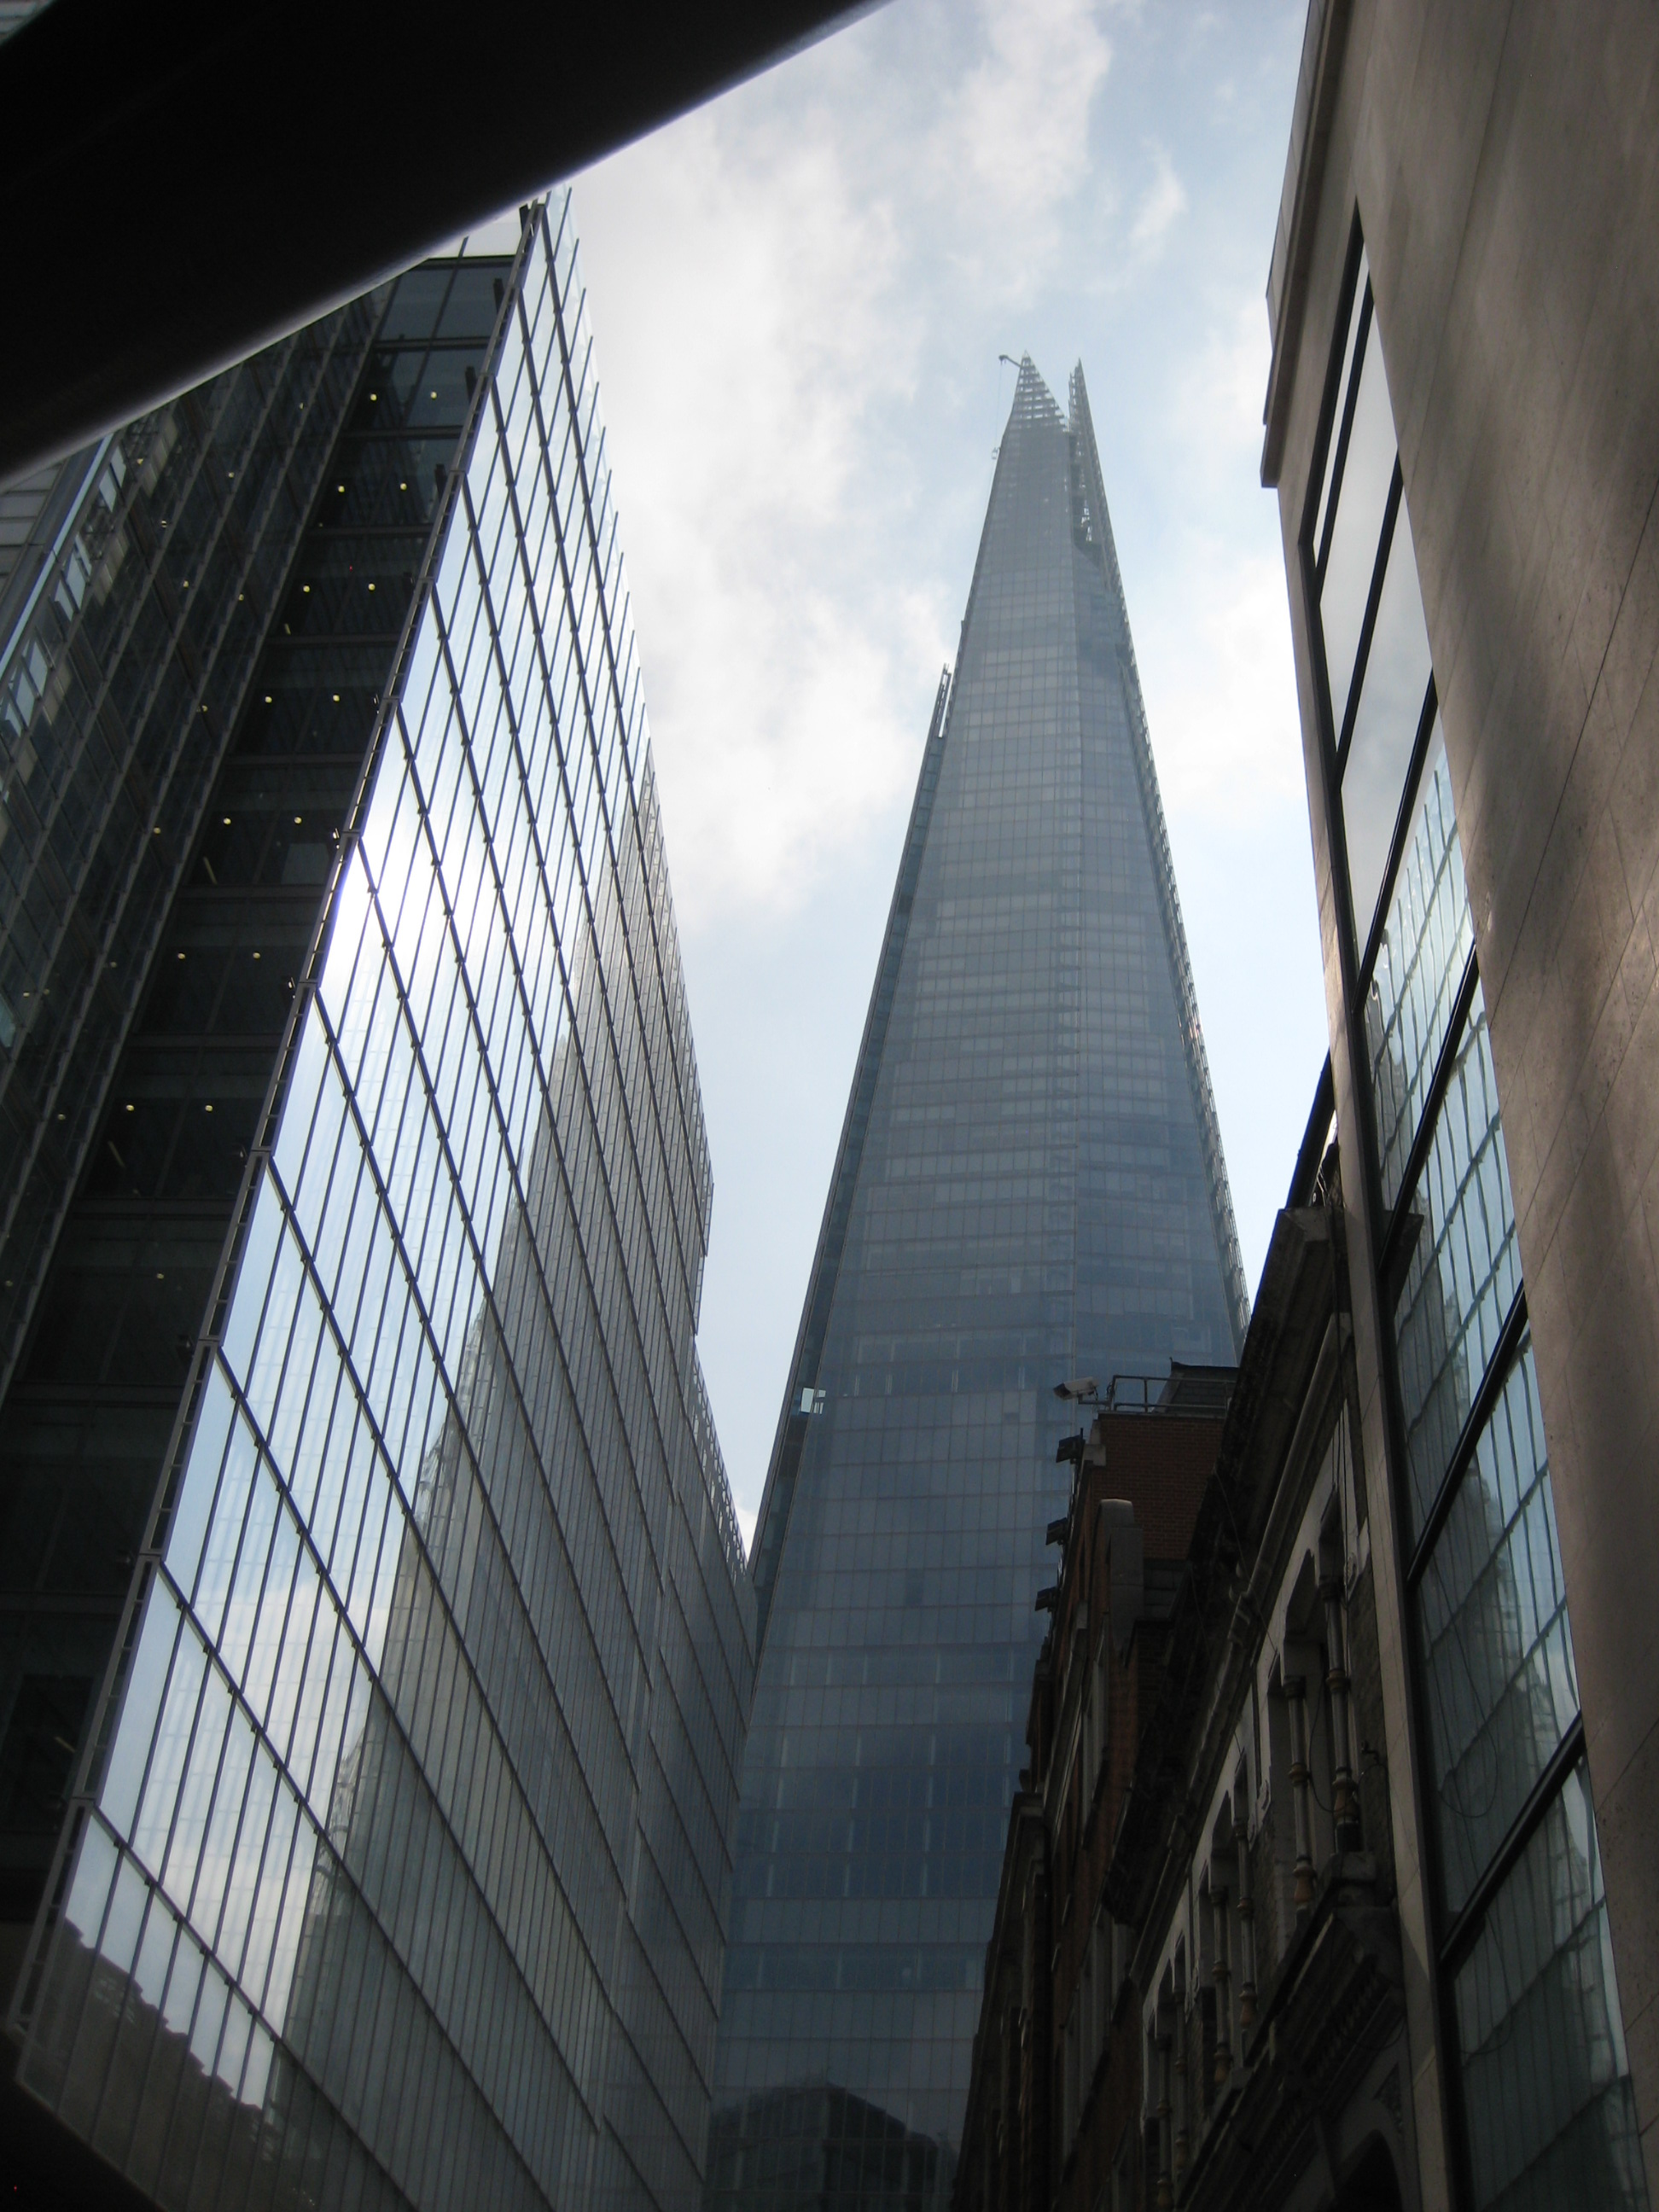 Shard Tower © Robert Mason 2013